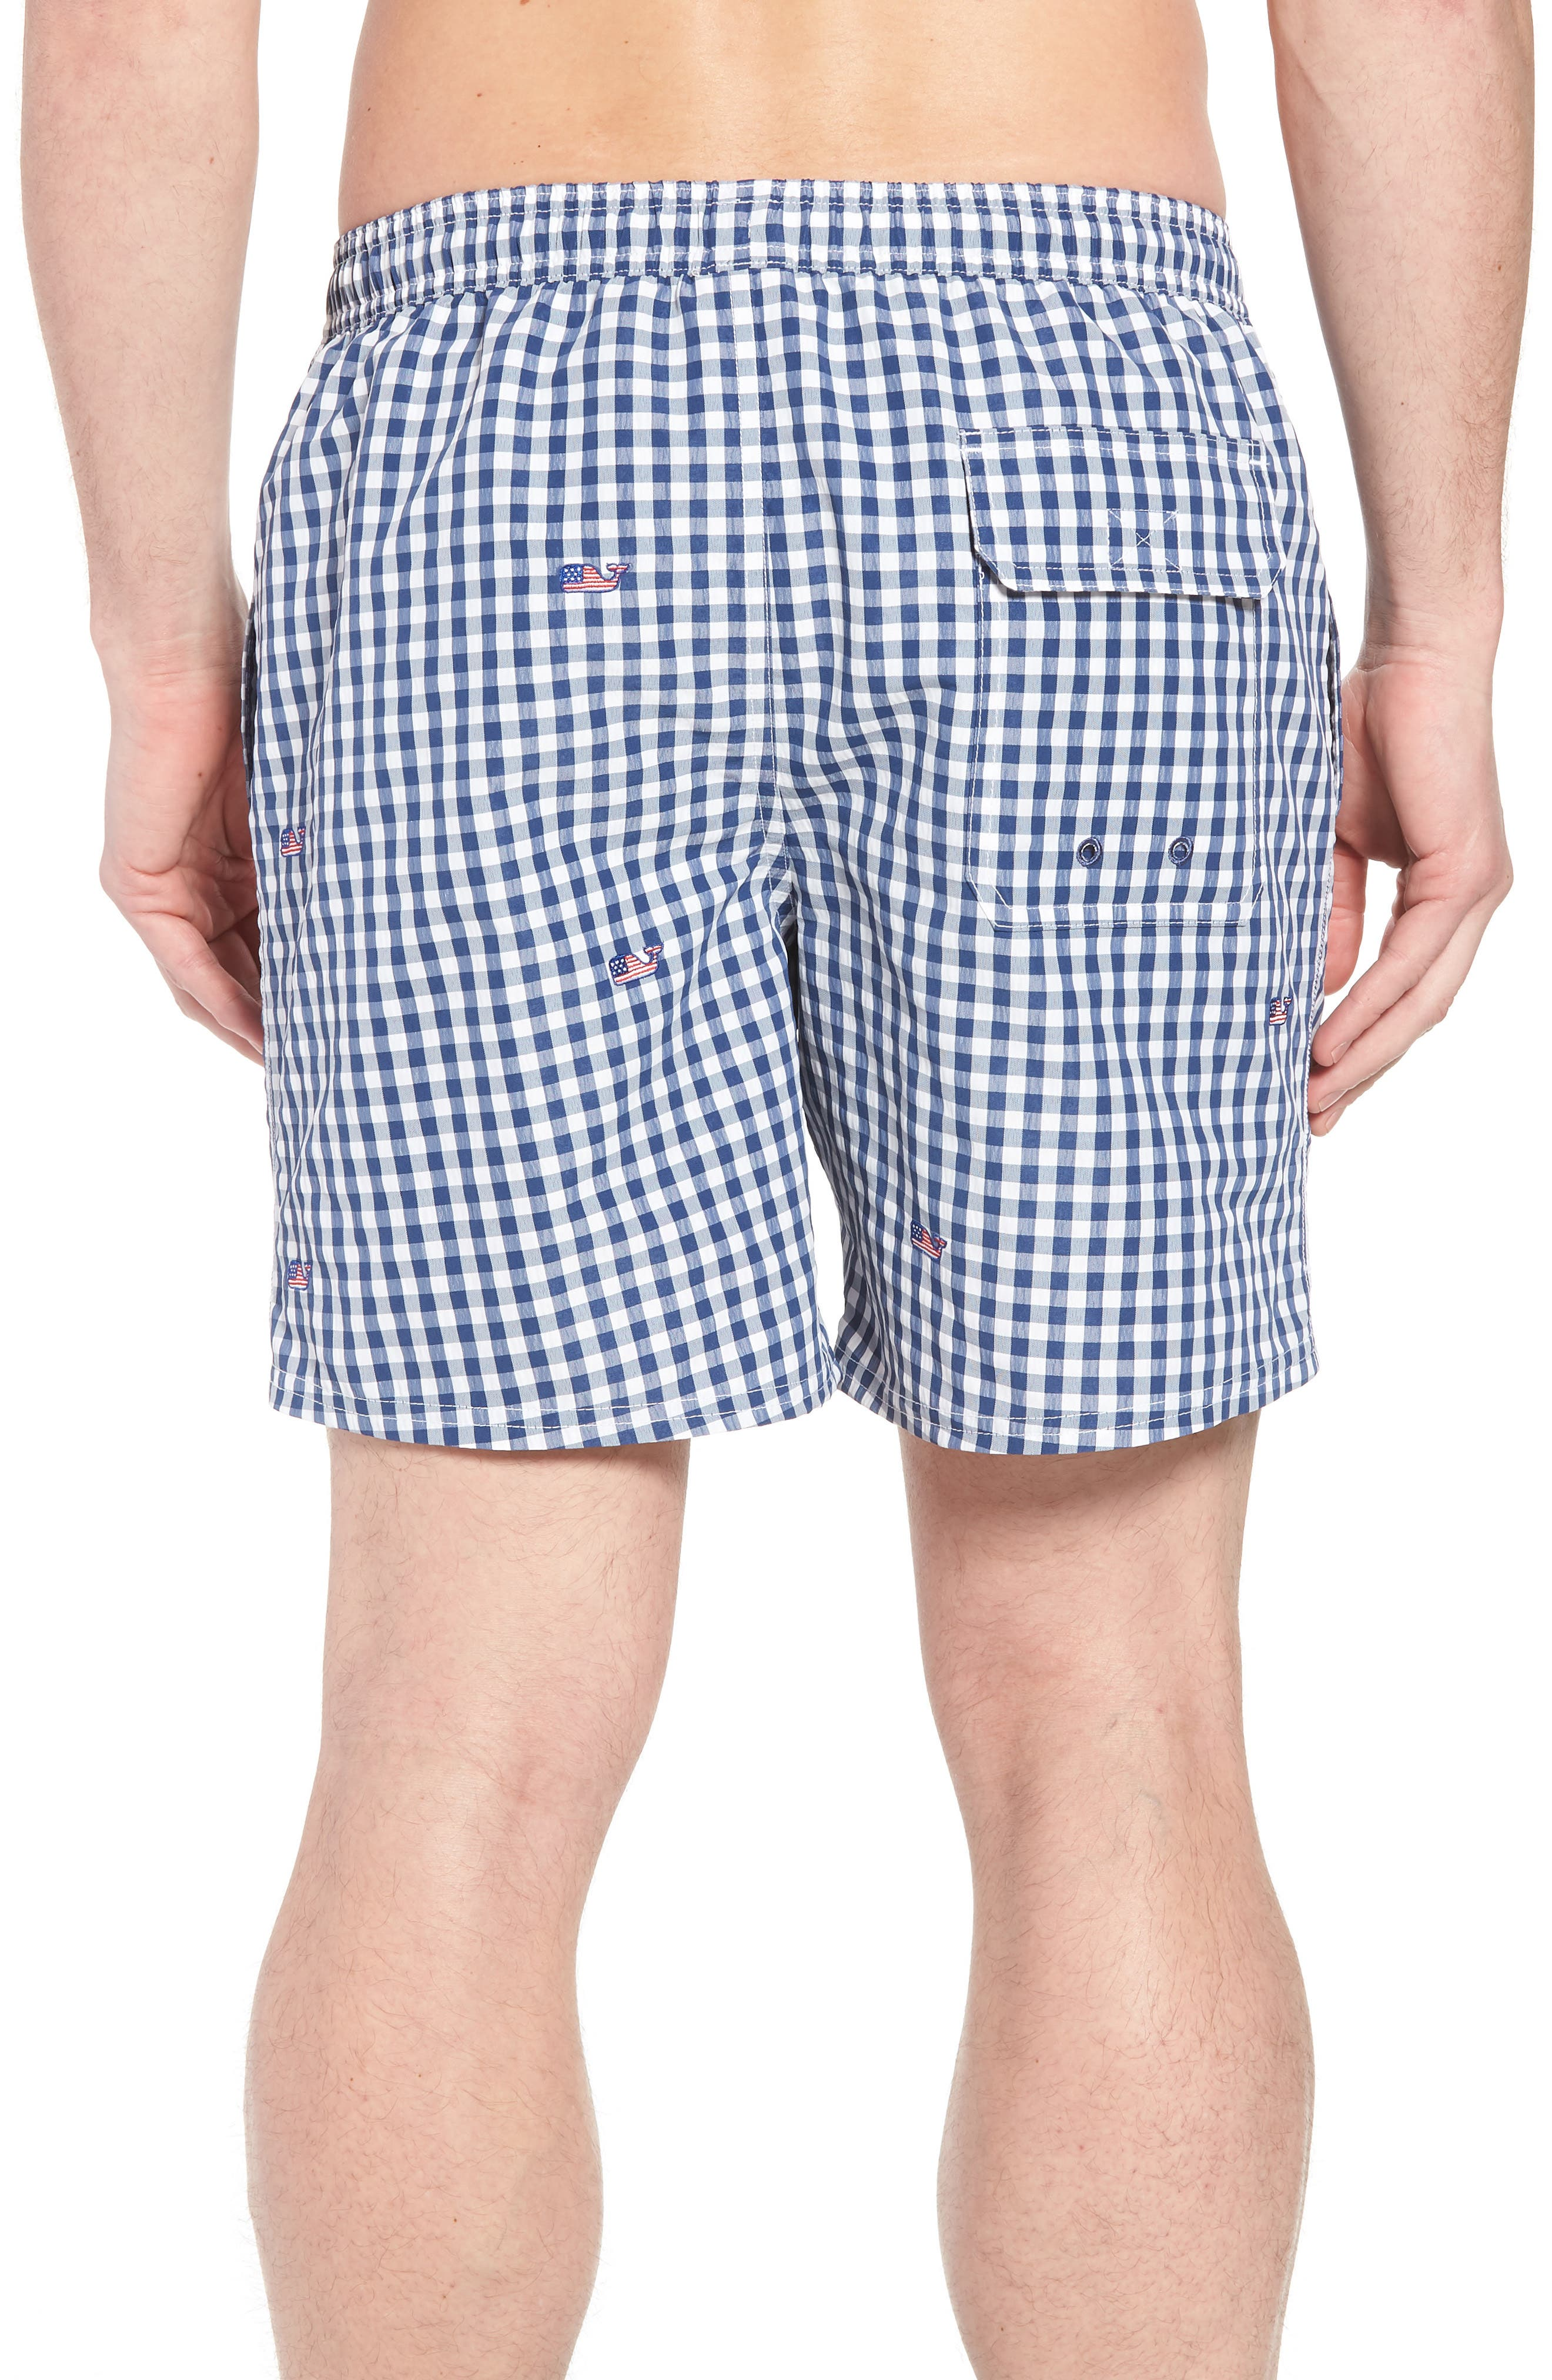 Chappy Flag Whale Embroidered Gingham Swim Trunks,                             Alternate thumbnail 2, color,                             461